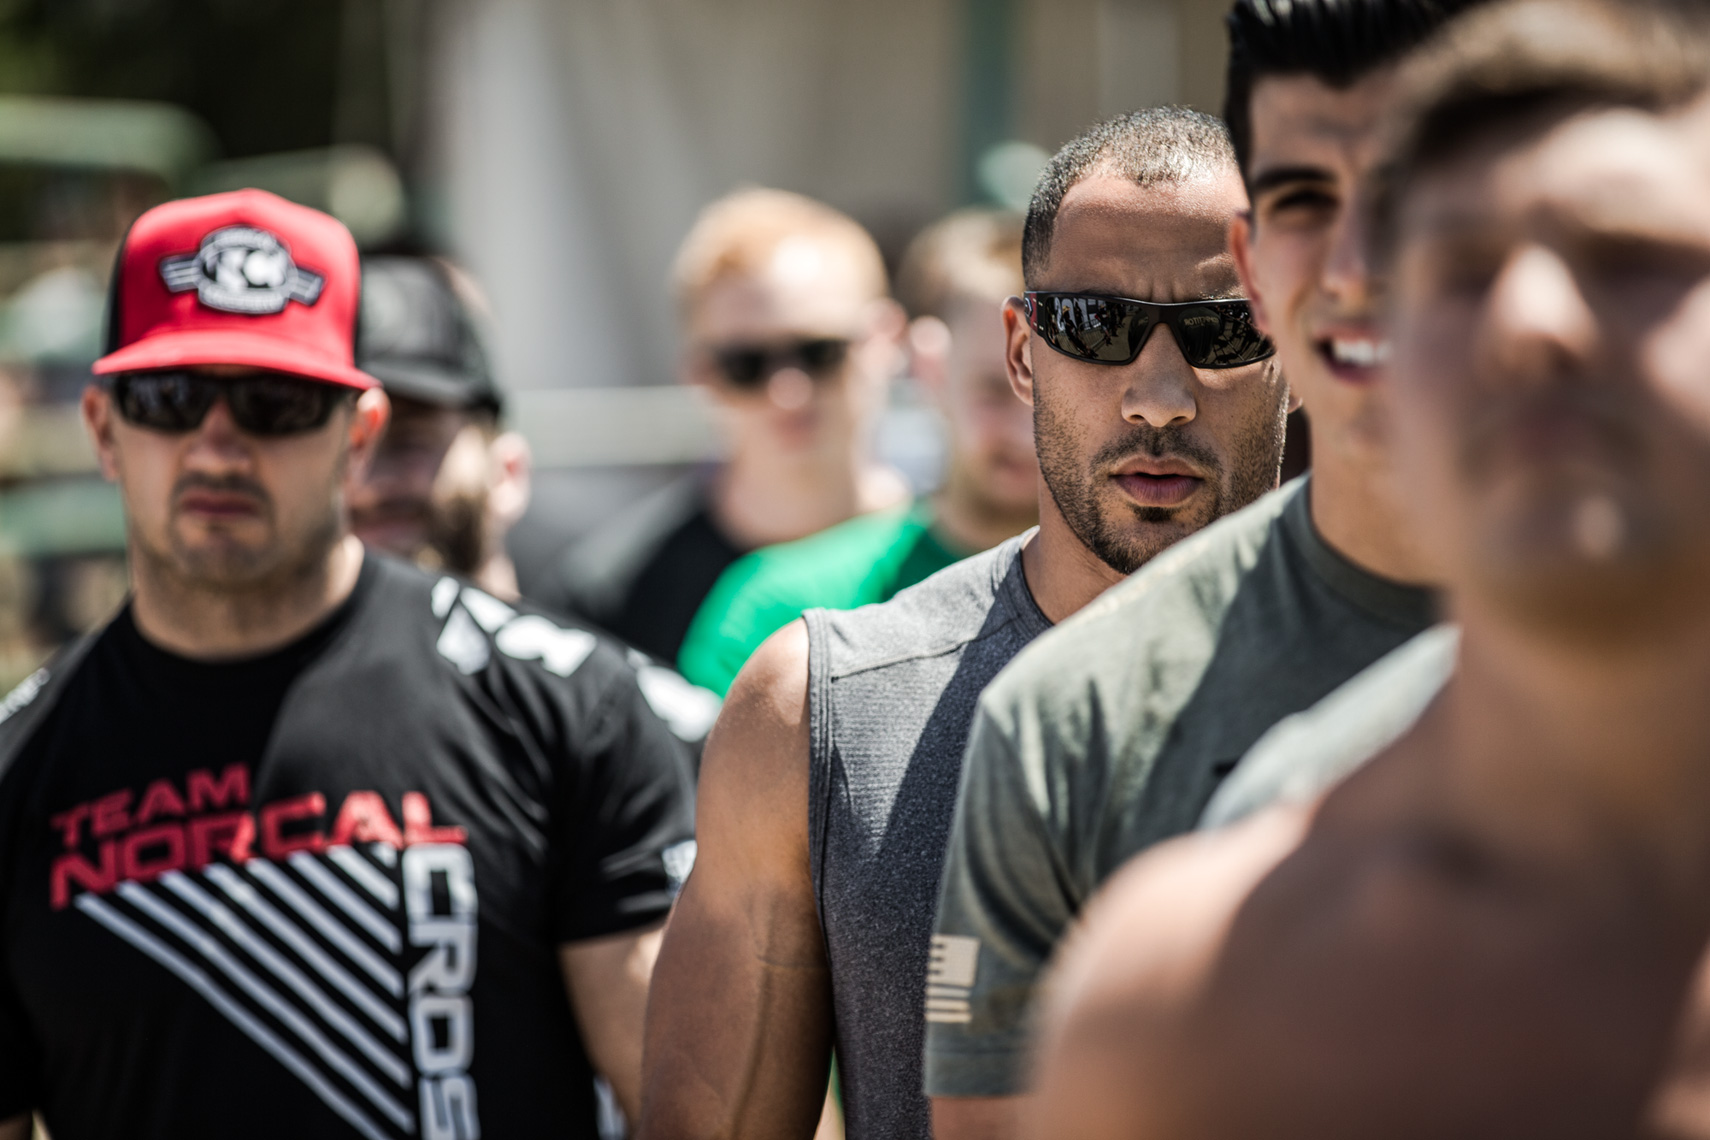 Los Angeles Sports Photography, Michael Brian, Jason Khalipa, Neil Maddox, Garret Fisher, Reebok Crossfit Games athletes, Rogue, game face